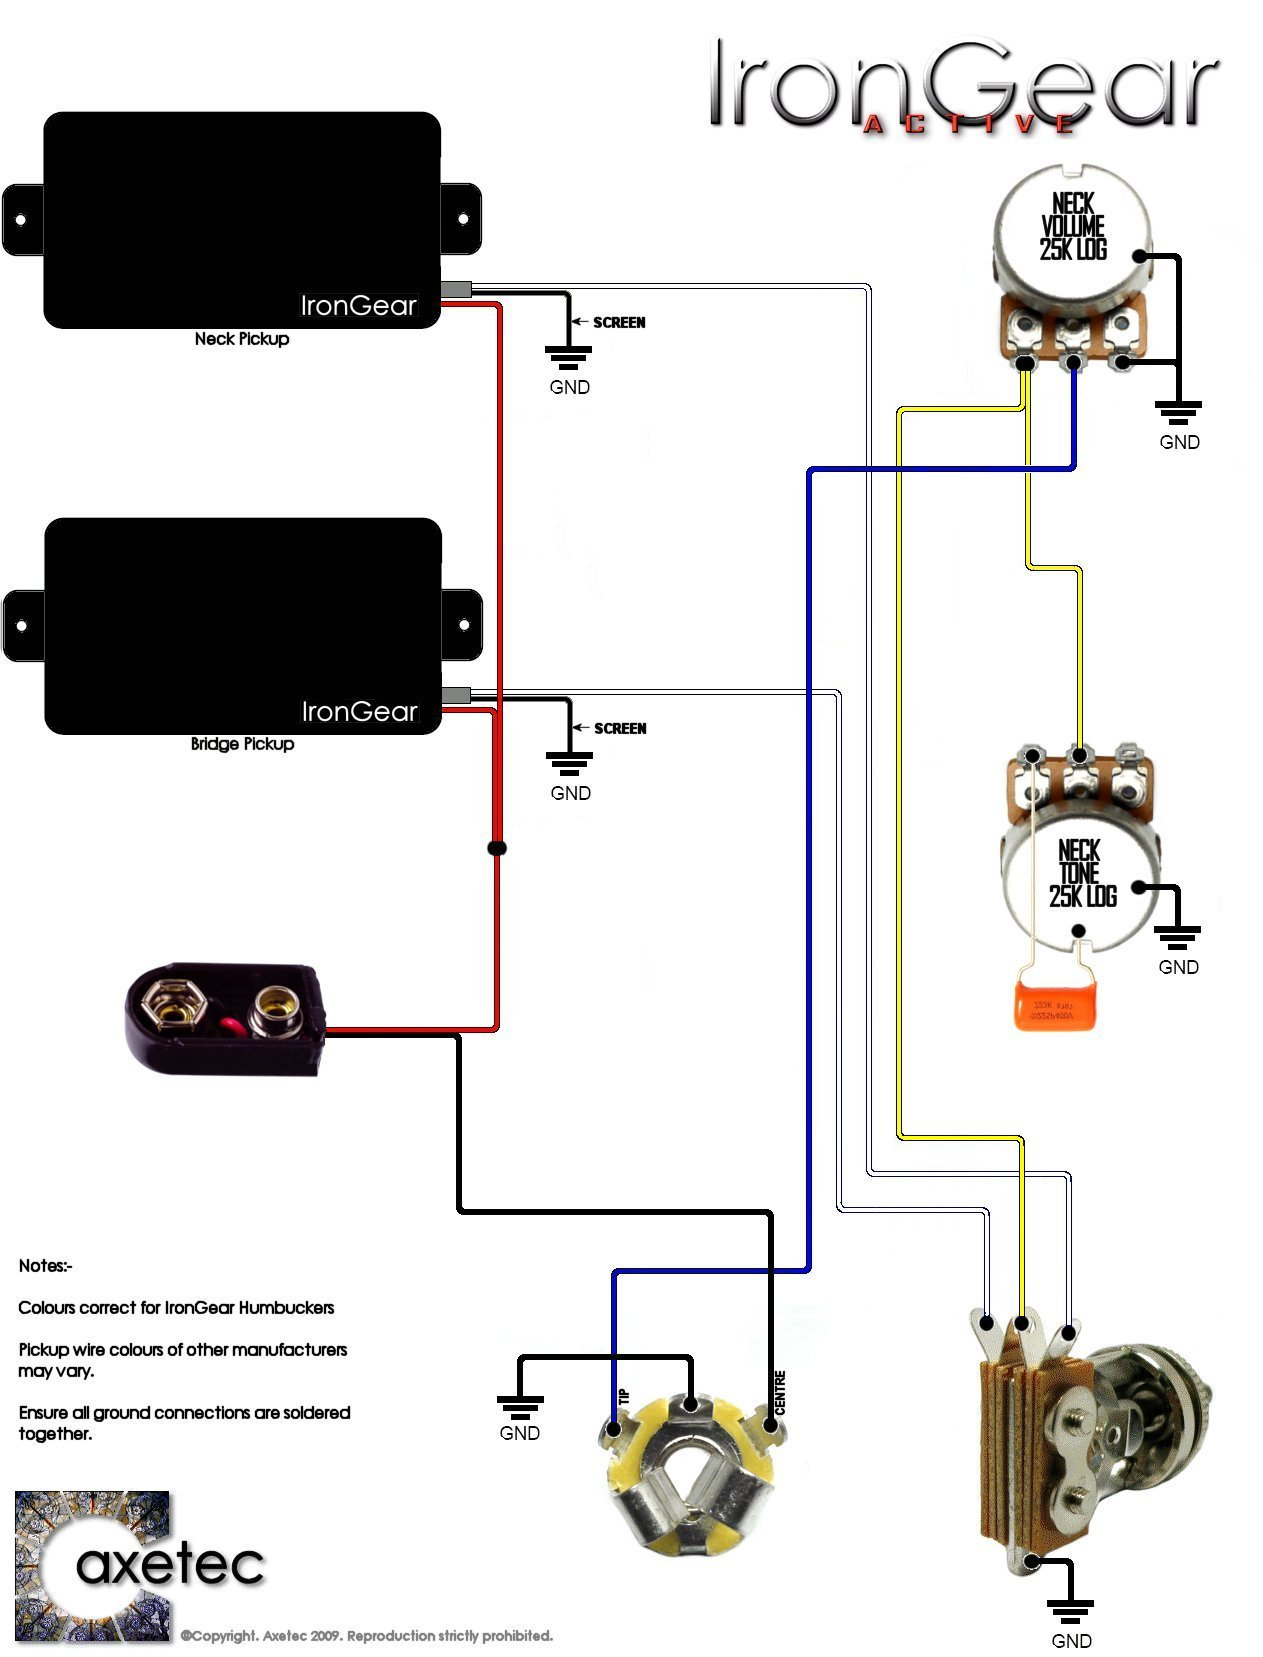 B Pickup Wiring Diagram Another Blog About 3 Way Guitar Switch Import Irongear Pickups Rh Co Uk